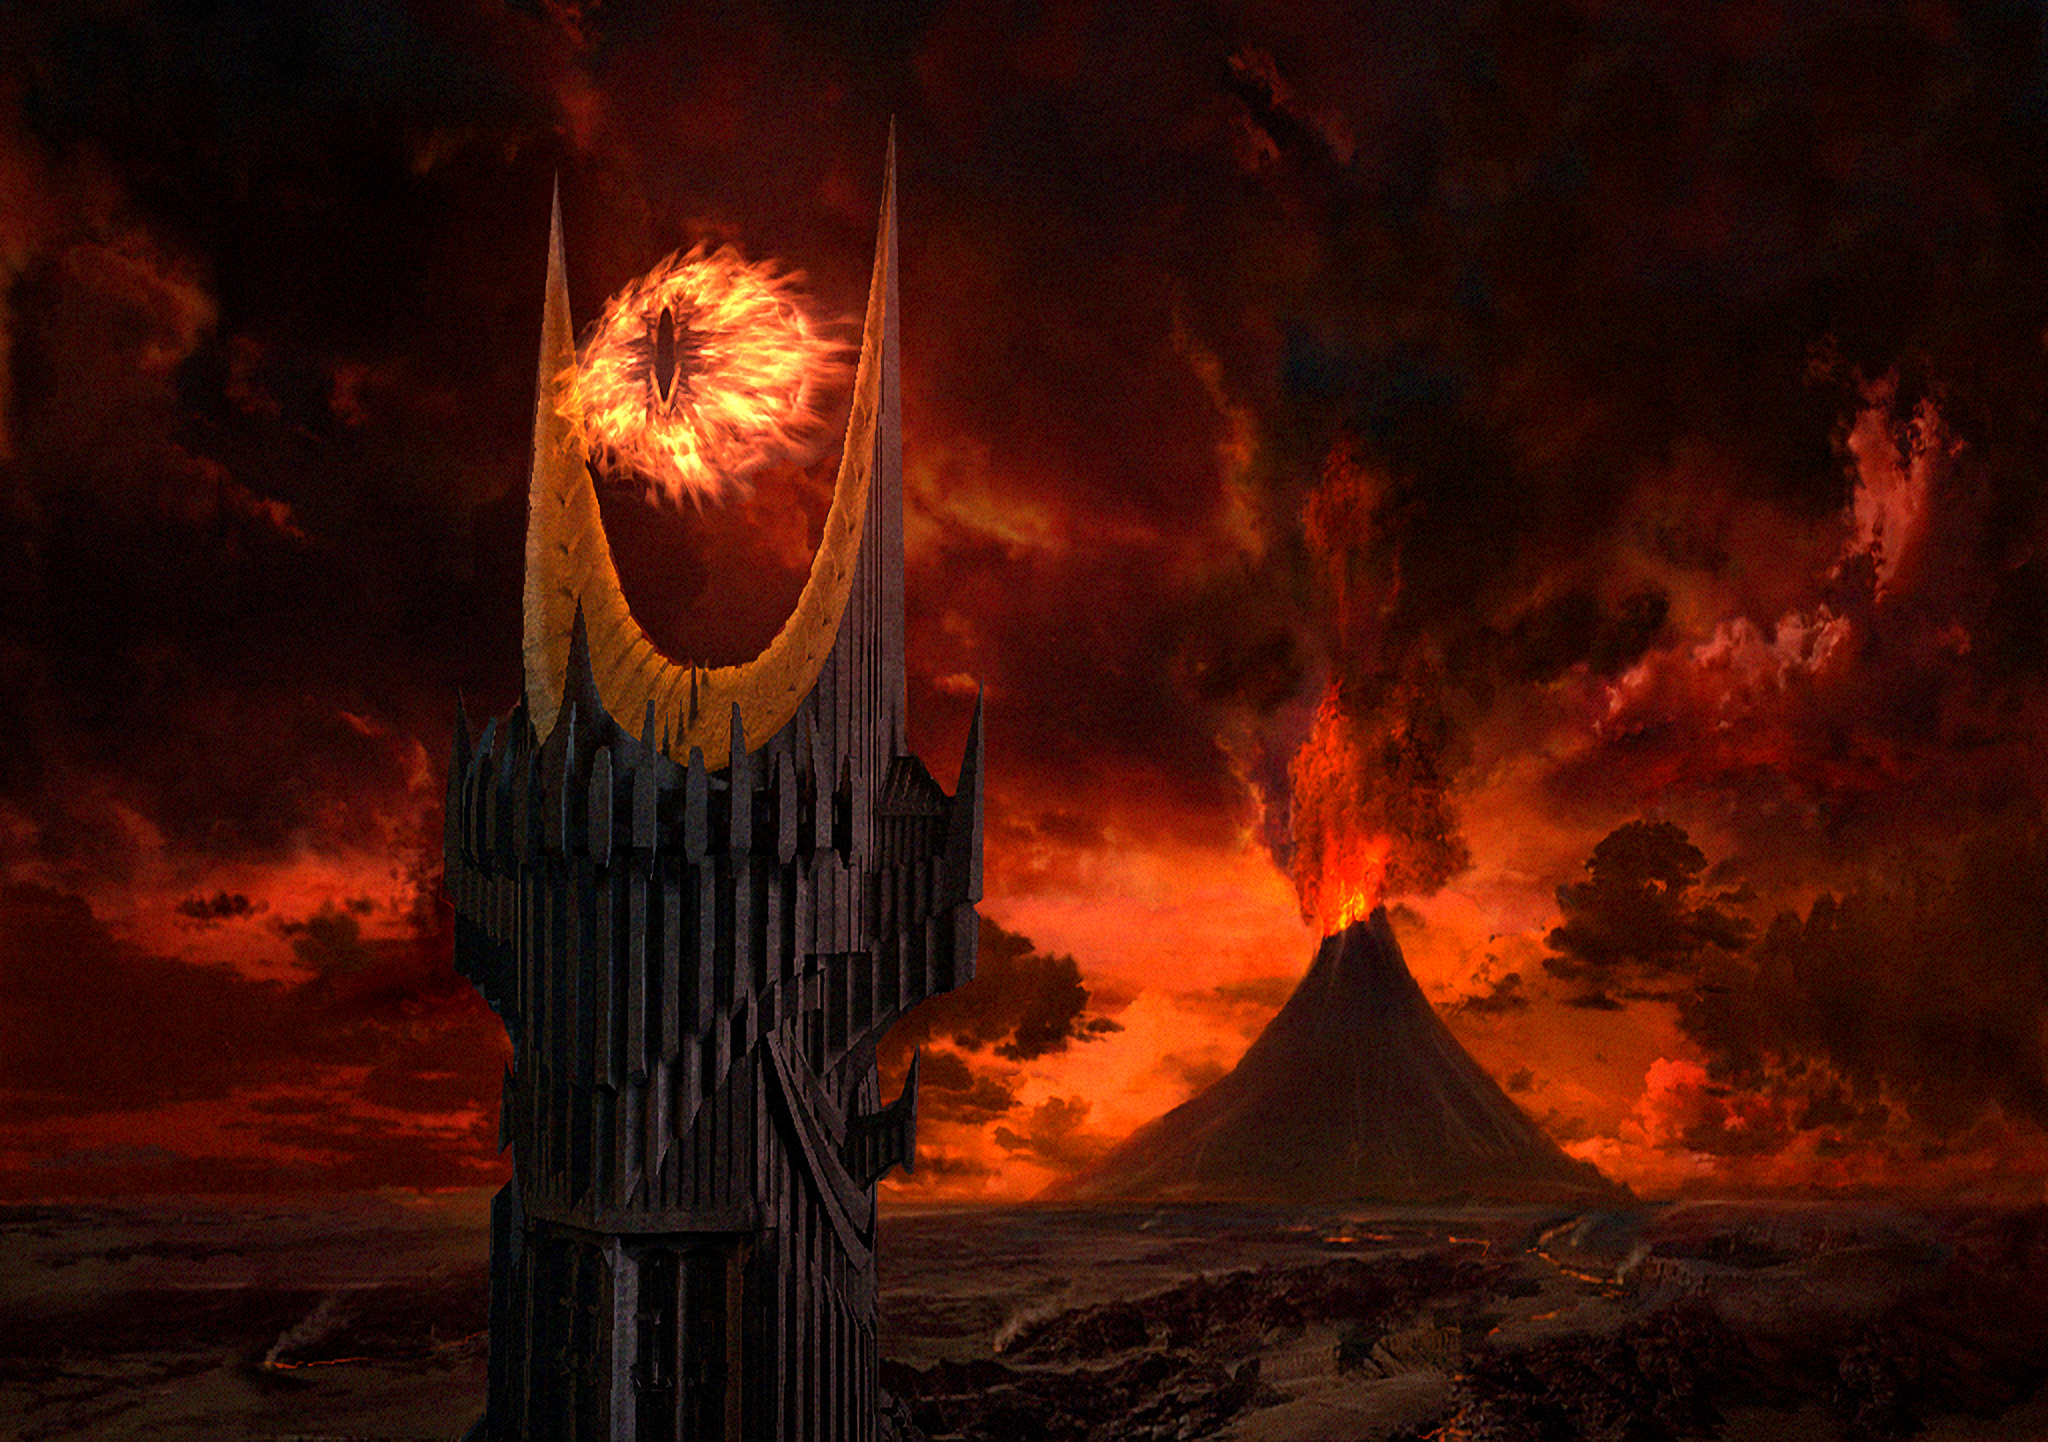 They found the Eye of Sauron at the bottom of the Indian Ocean